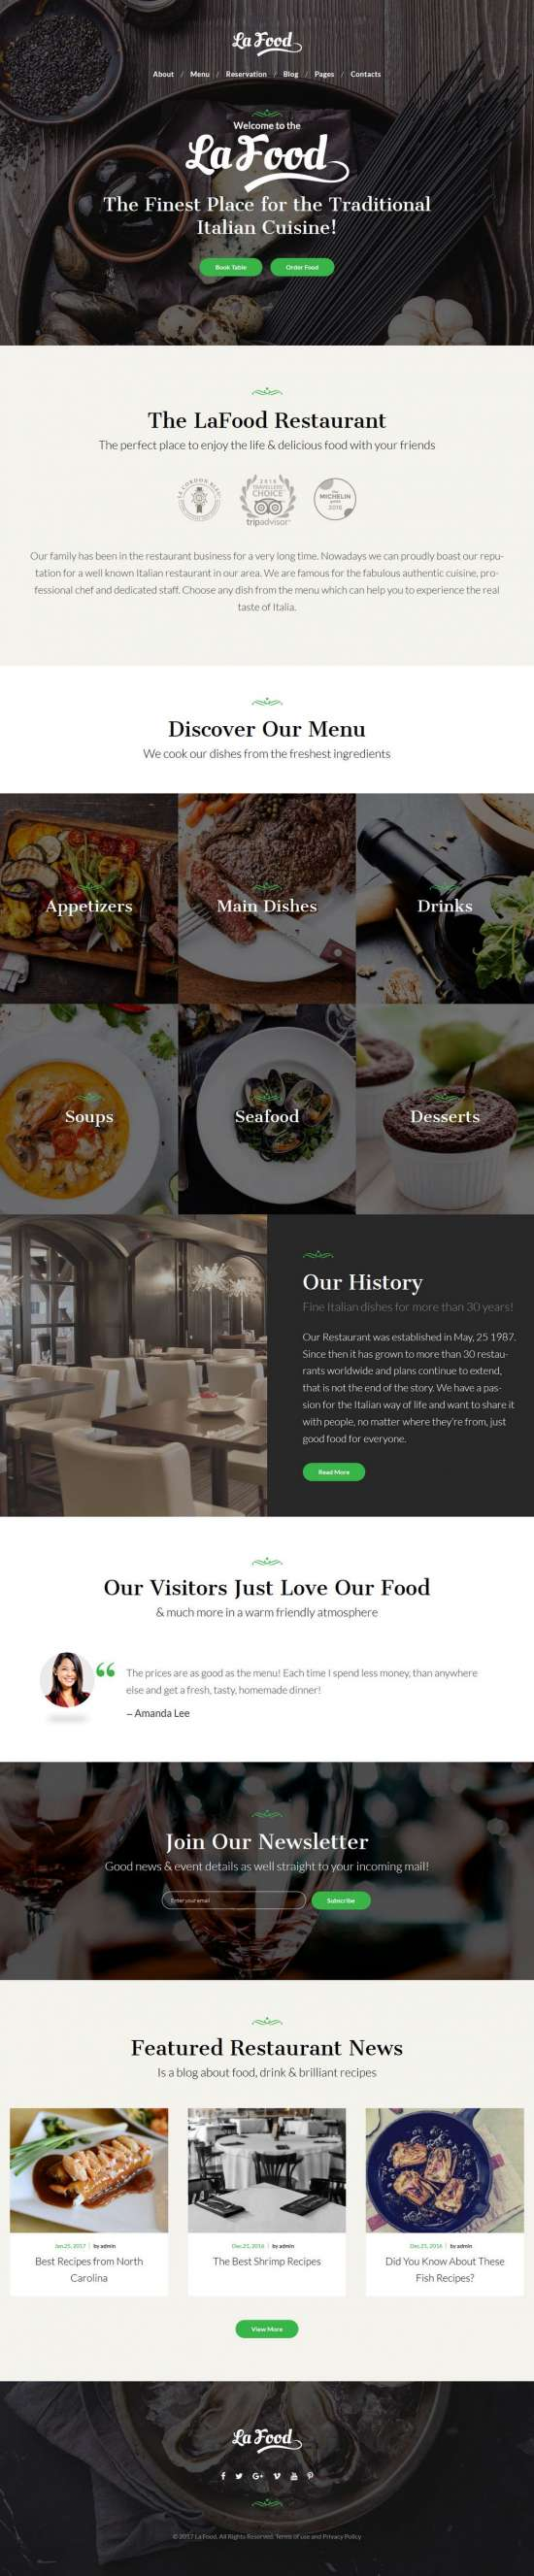 la food wordpress theme restaurants 01 550x2654 - La Food WordPress Theme